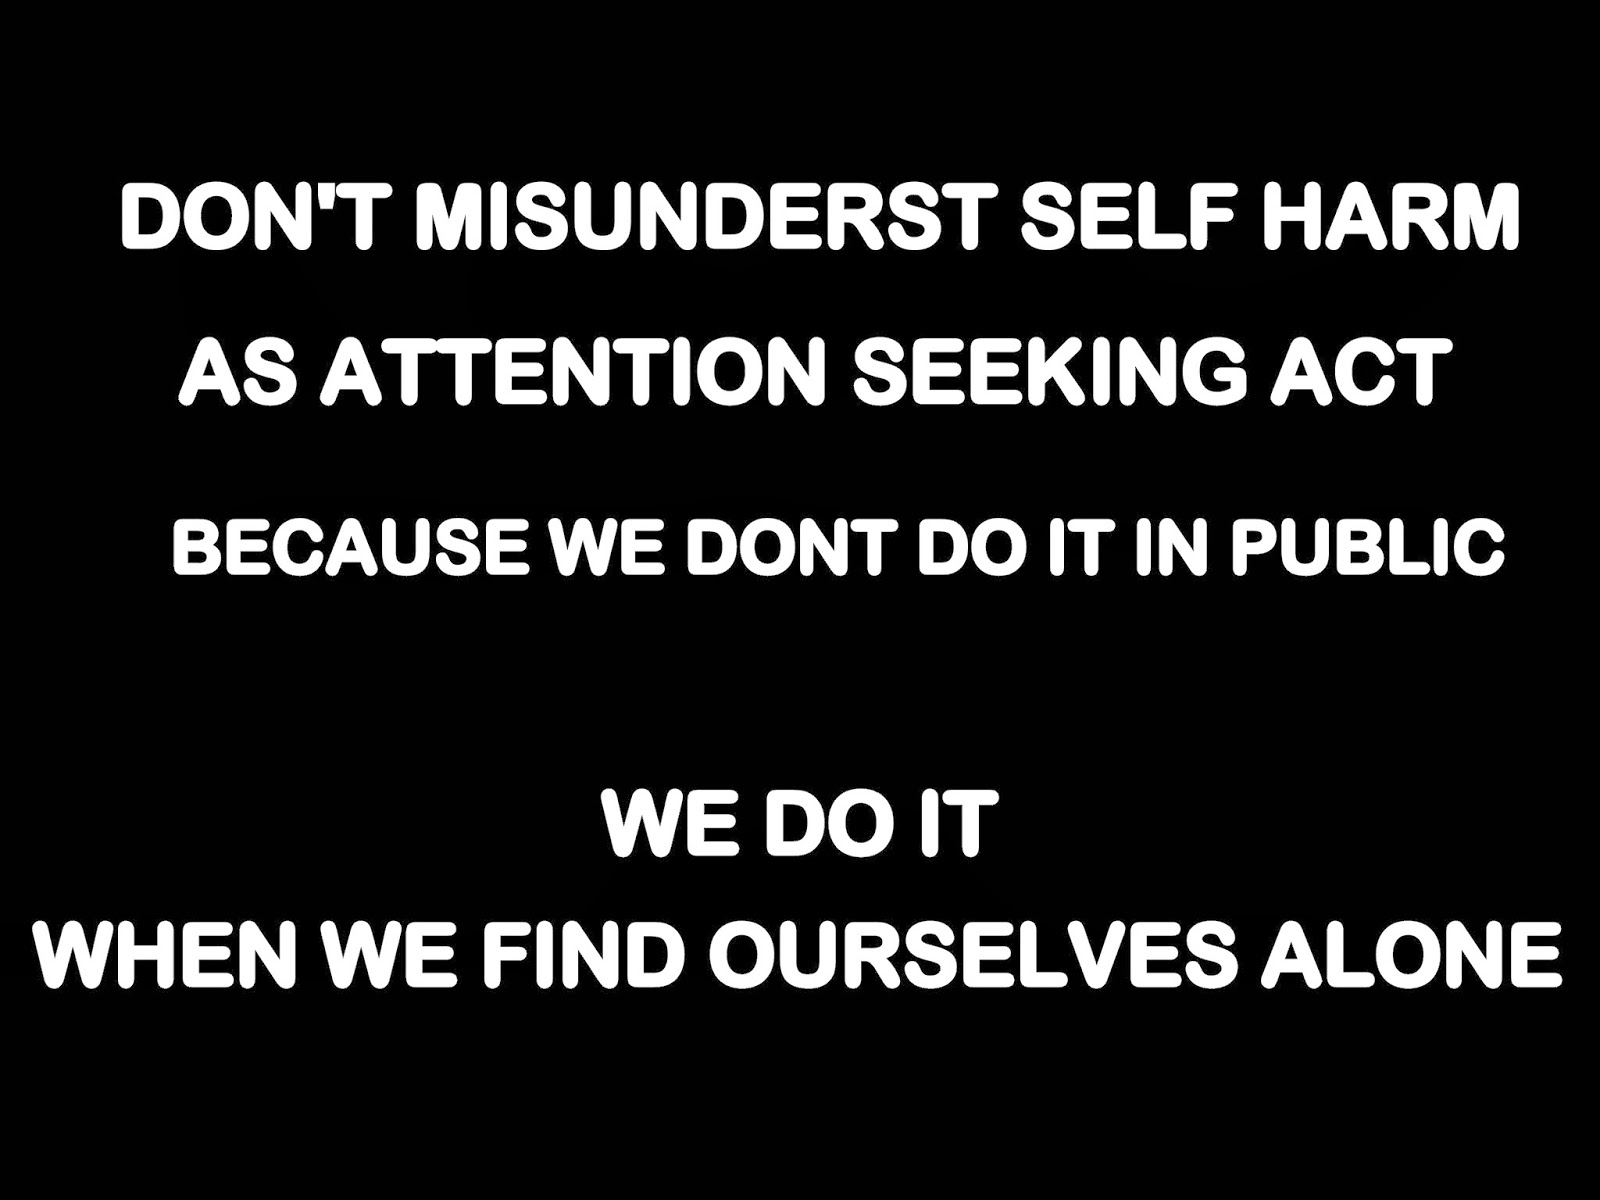 Quotes About Seeking Help: Attention Seeker Quotes And Sayings. QuotesGram